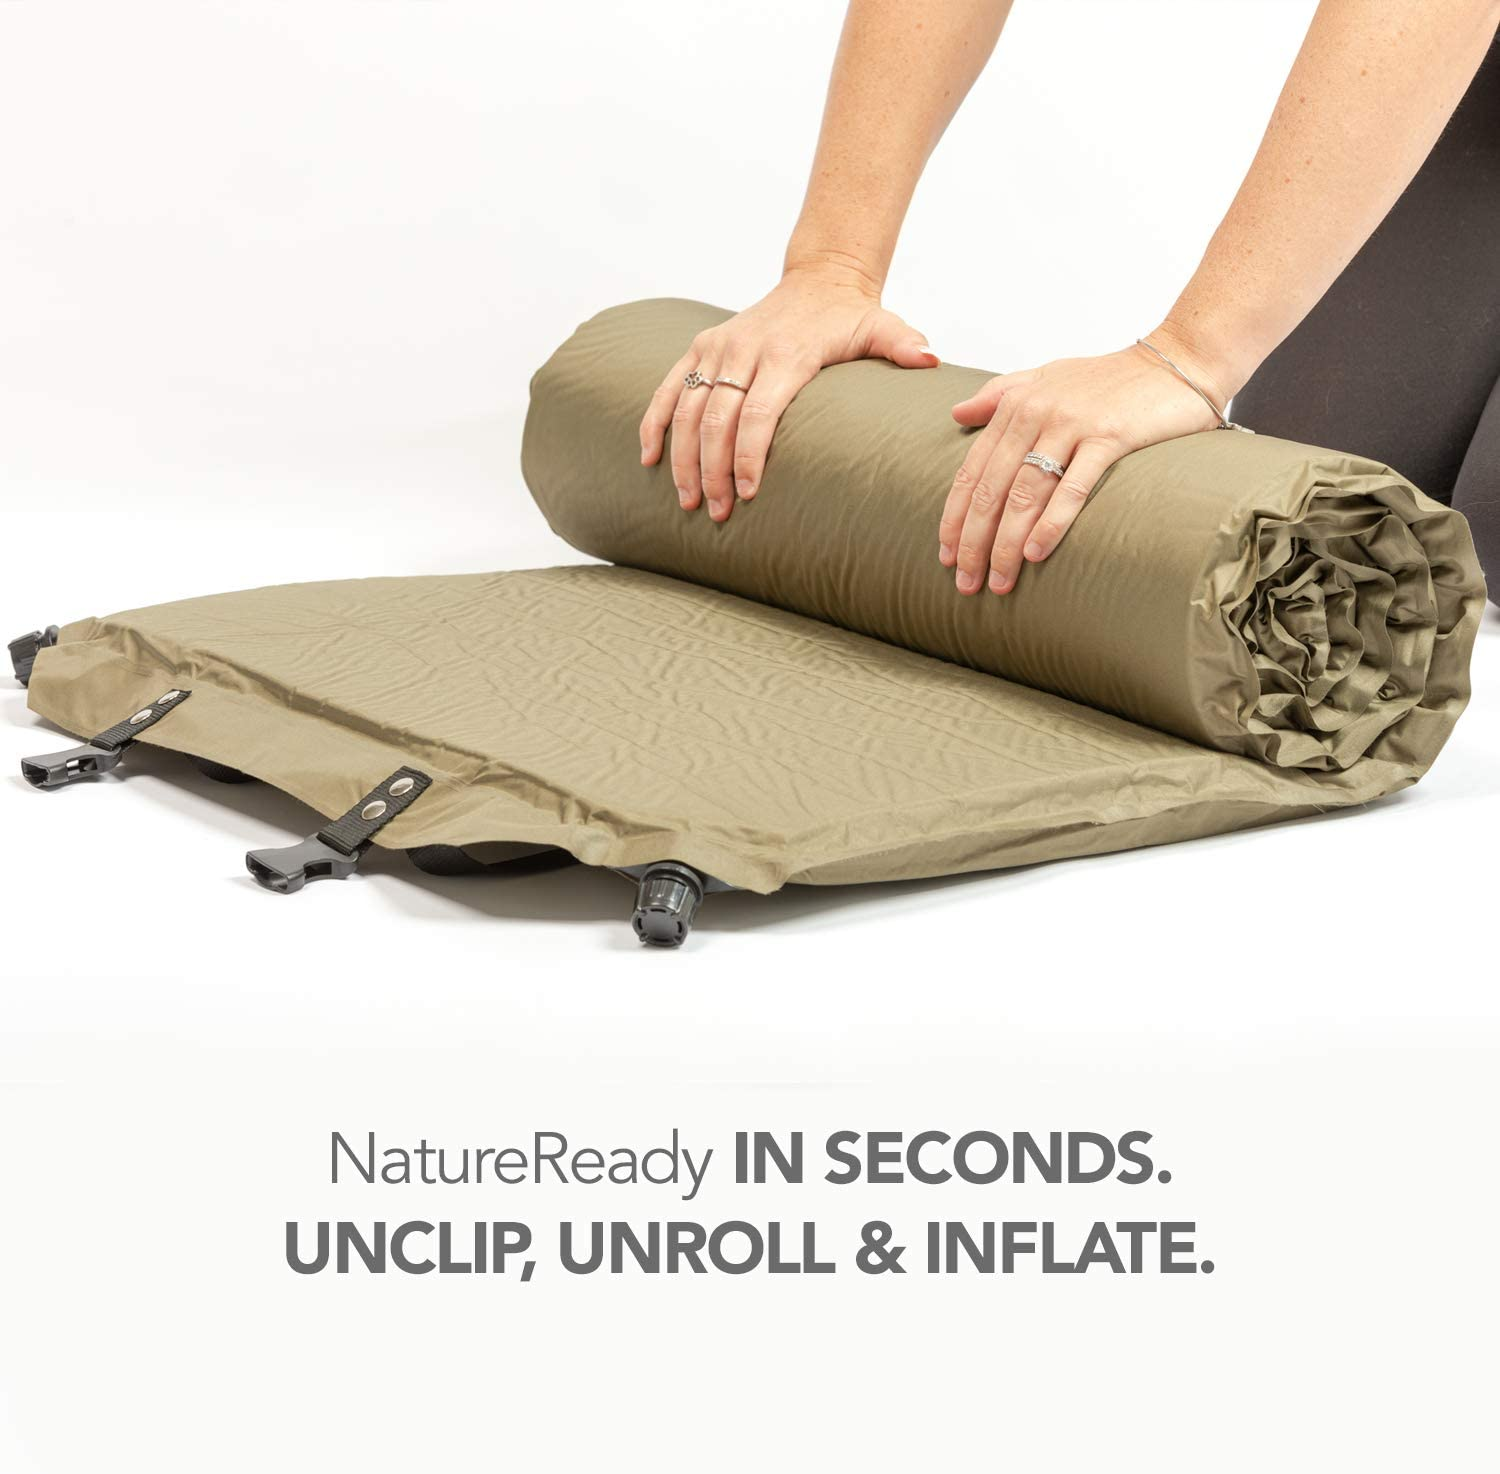 Better Habitat NatureReady Sleeping Pad. [Single 75x24x2]. Lightweight Portable Self-Inflating Camping Mat, Roll Out, with Waterproof Cover, Travel Bag